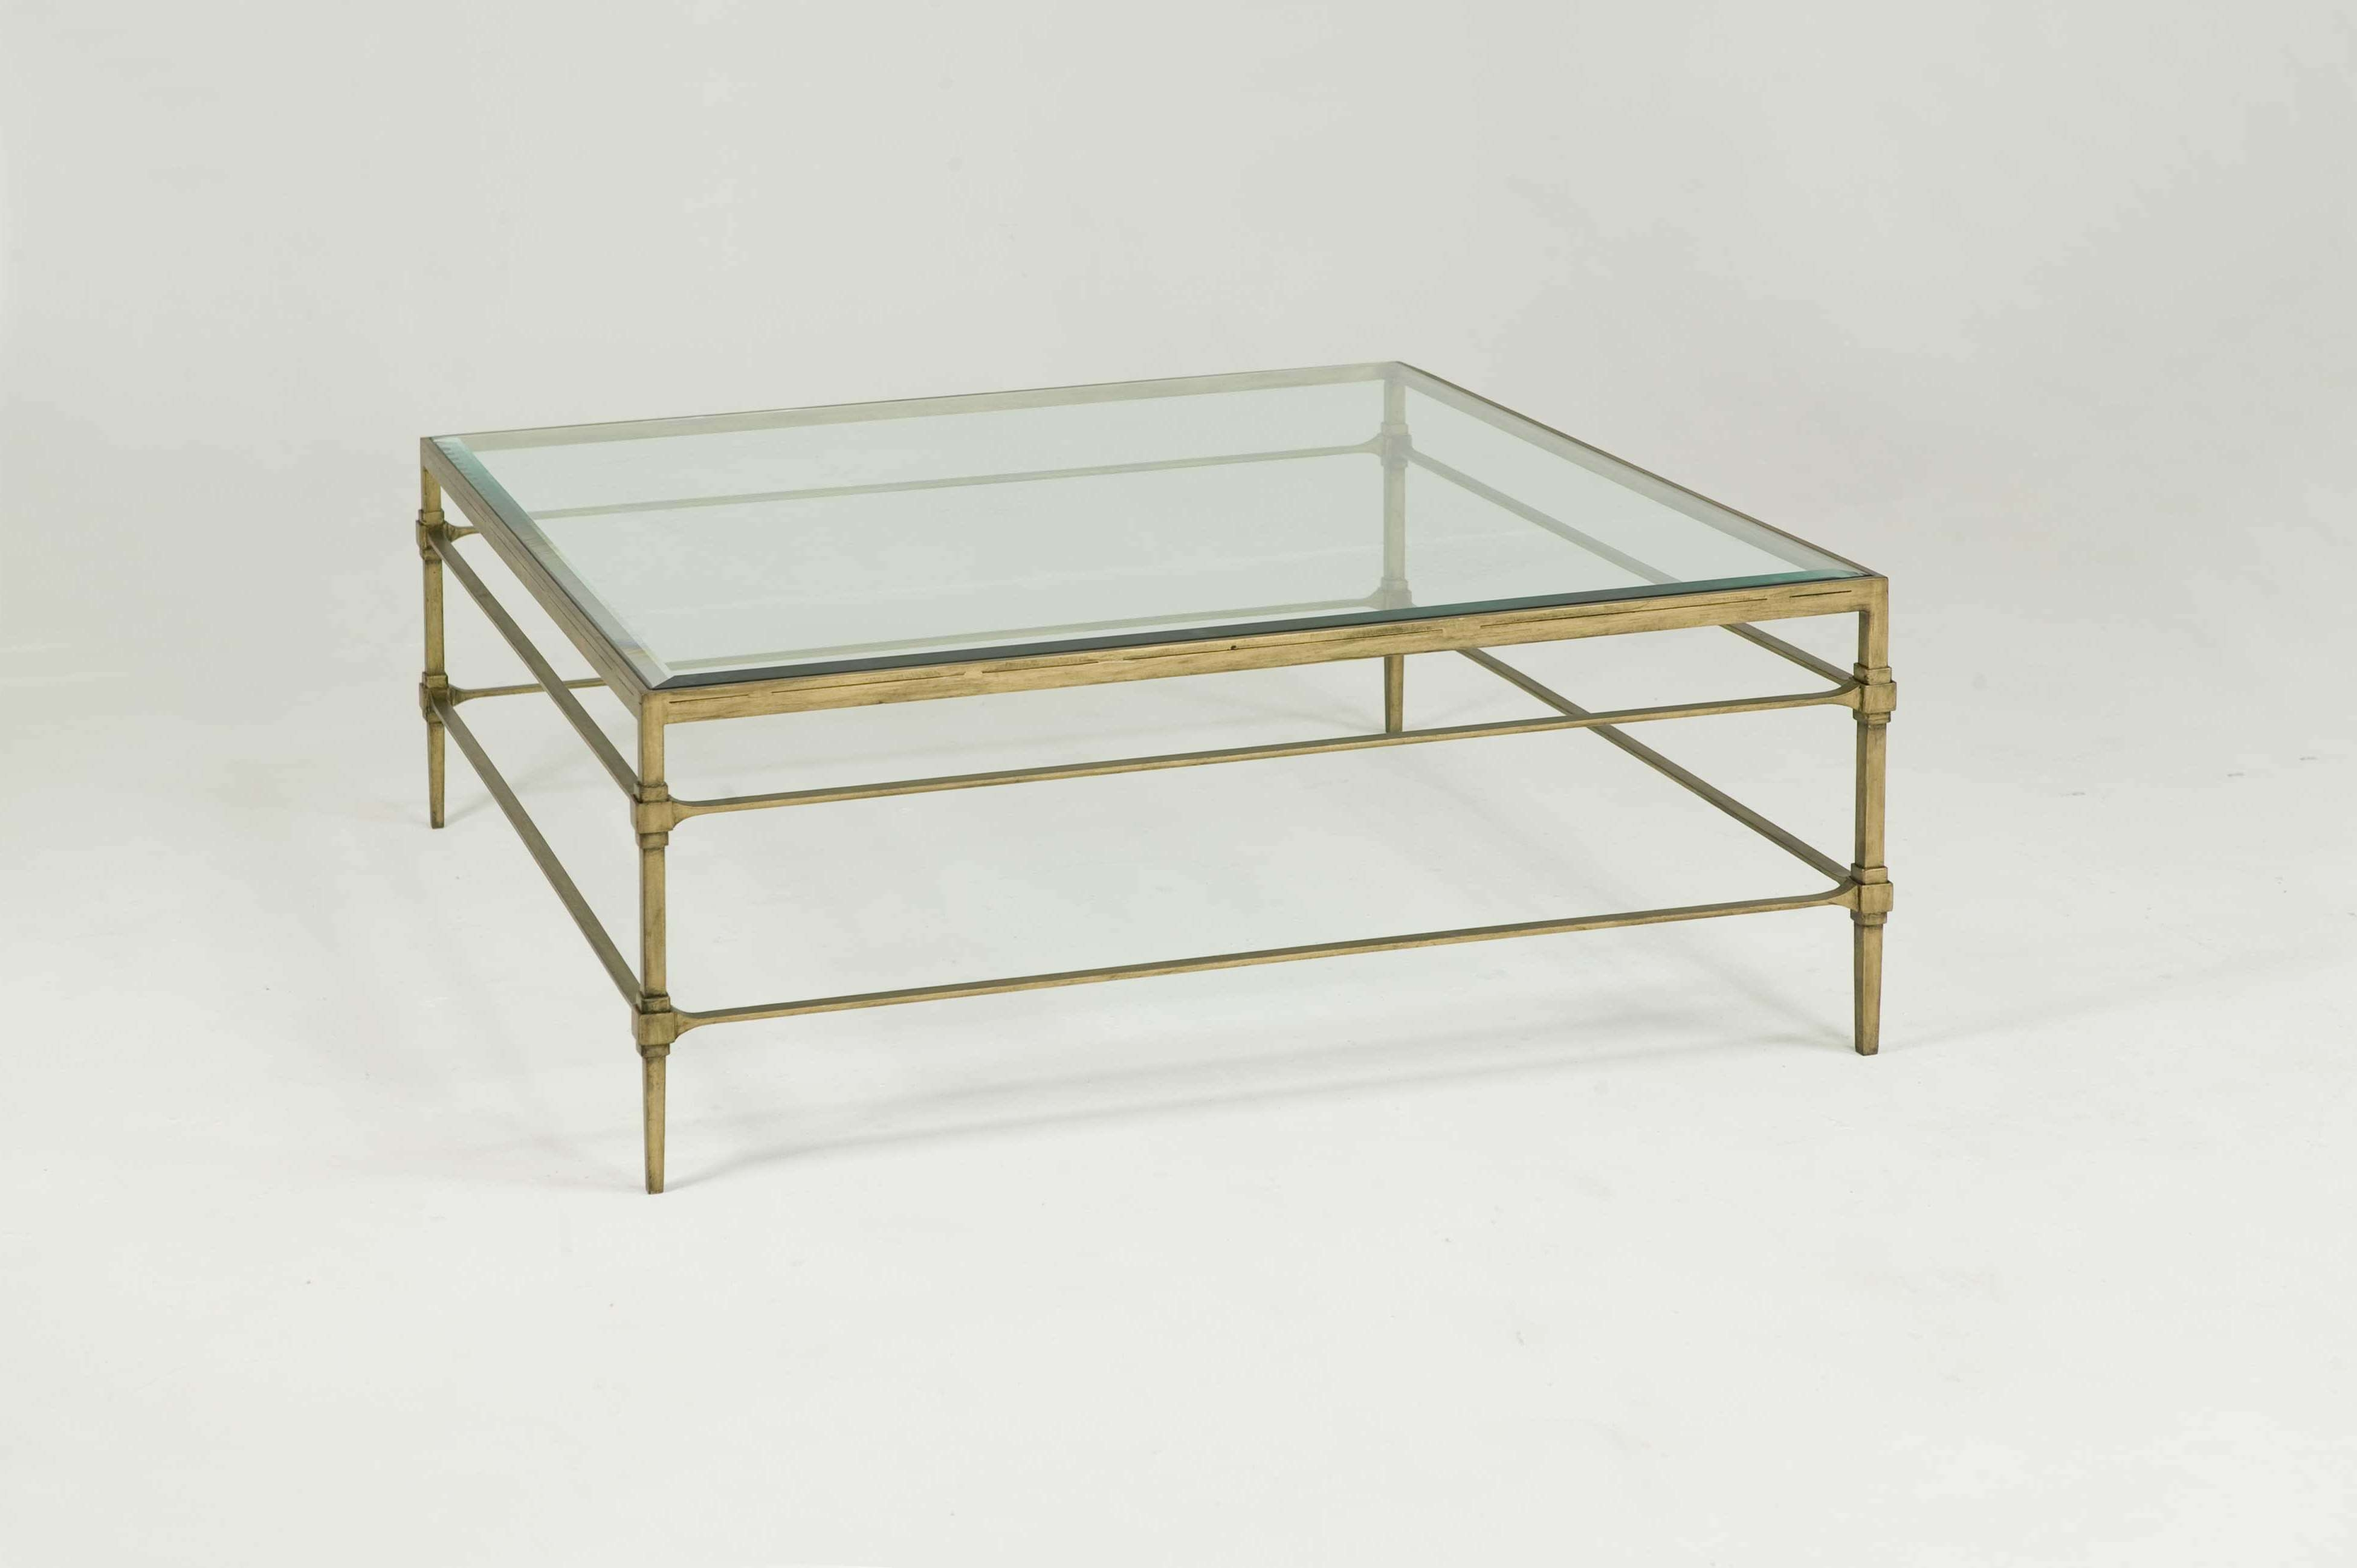 Decorations : Wood And Glass Coffee Tables Modern Ikea Metal And In Most Current Metal Glass Coffee Tables (View 6 of 20)